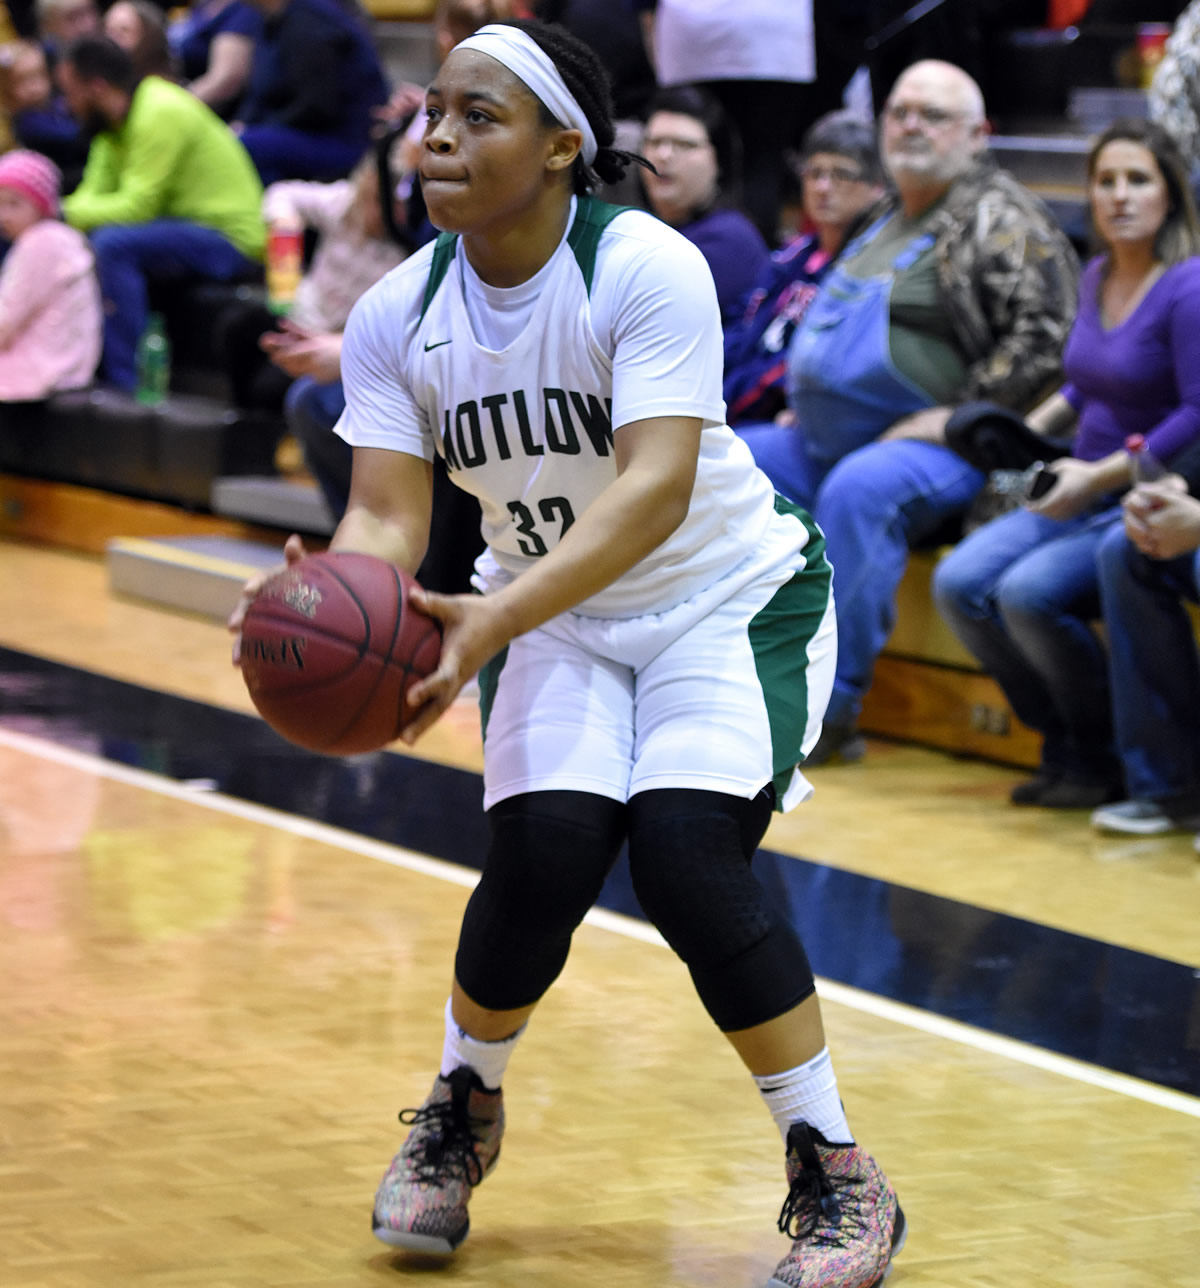 Motlow State sophomore Janna Lewis squares herself and prepares to launch a shot during the Lady Bucks' 87-79 win over Roane State Friday night at Copperweld Arena. Lewis, from Louisville, combined for 65 points and 20 rebounds in Motlow's weekend victories. She leads the TCCAA conference in both scoring and rebounding. Photo by Jeff Reed Photography.